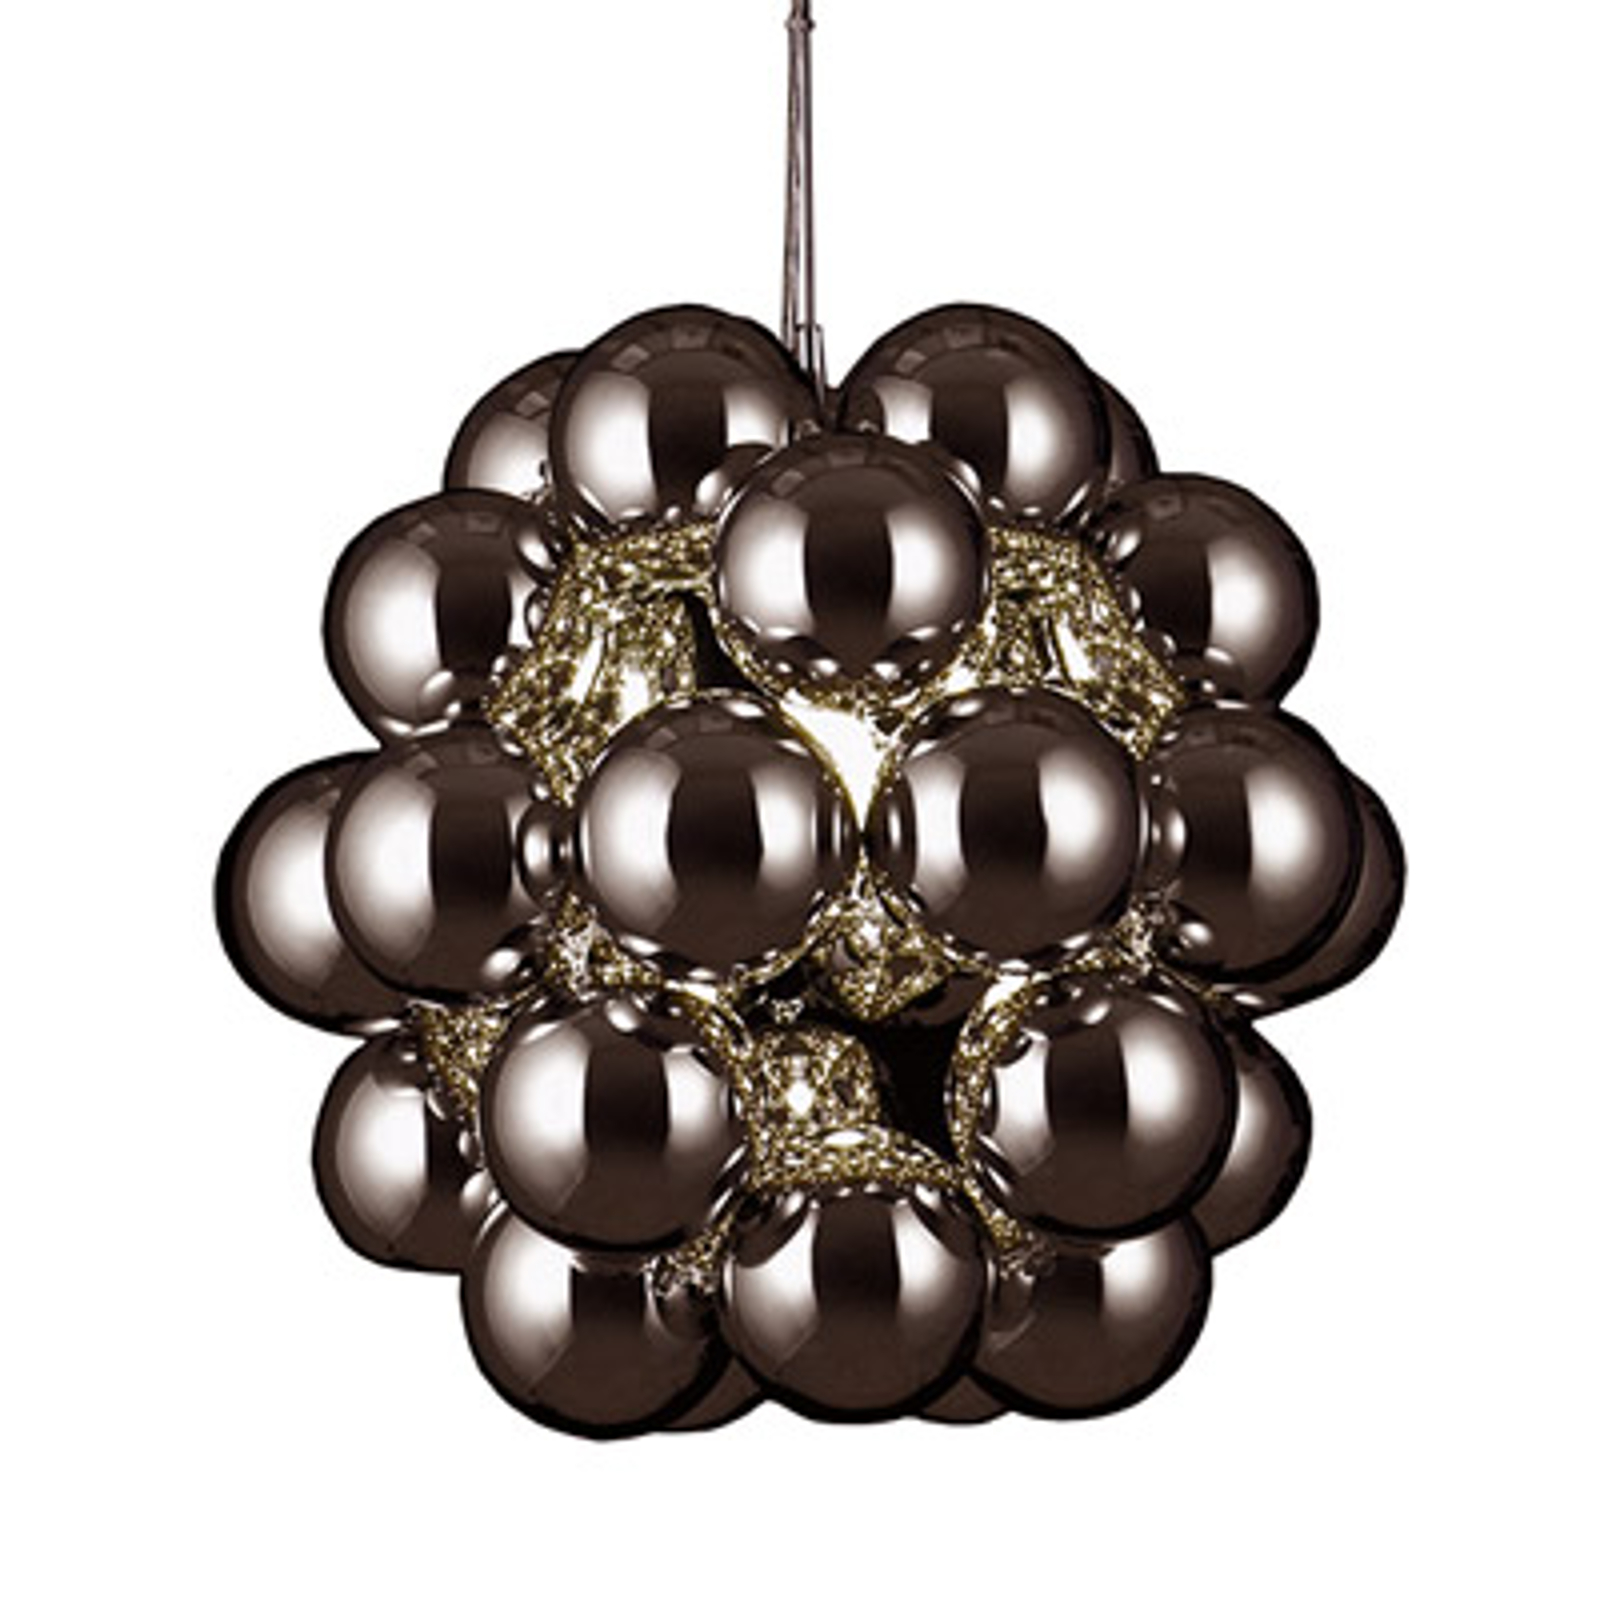 Innermost Beads Penta - Hanglamp in brons